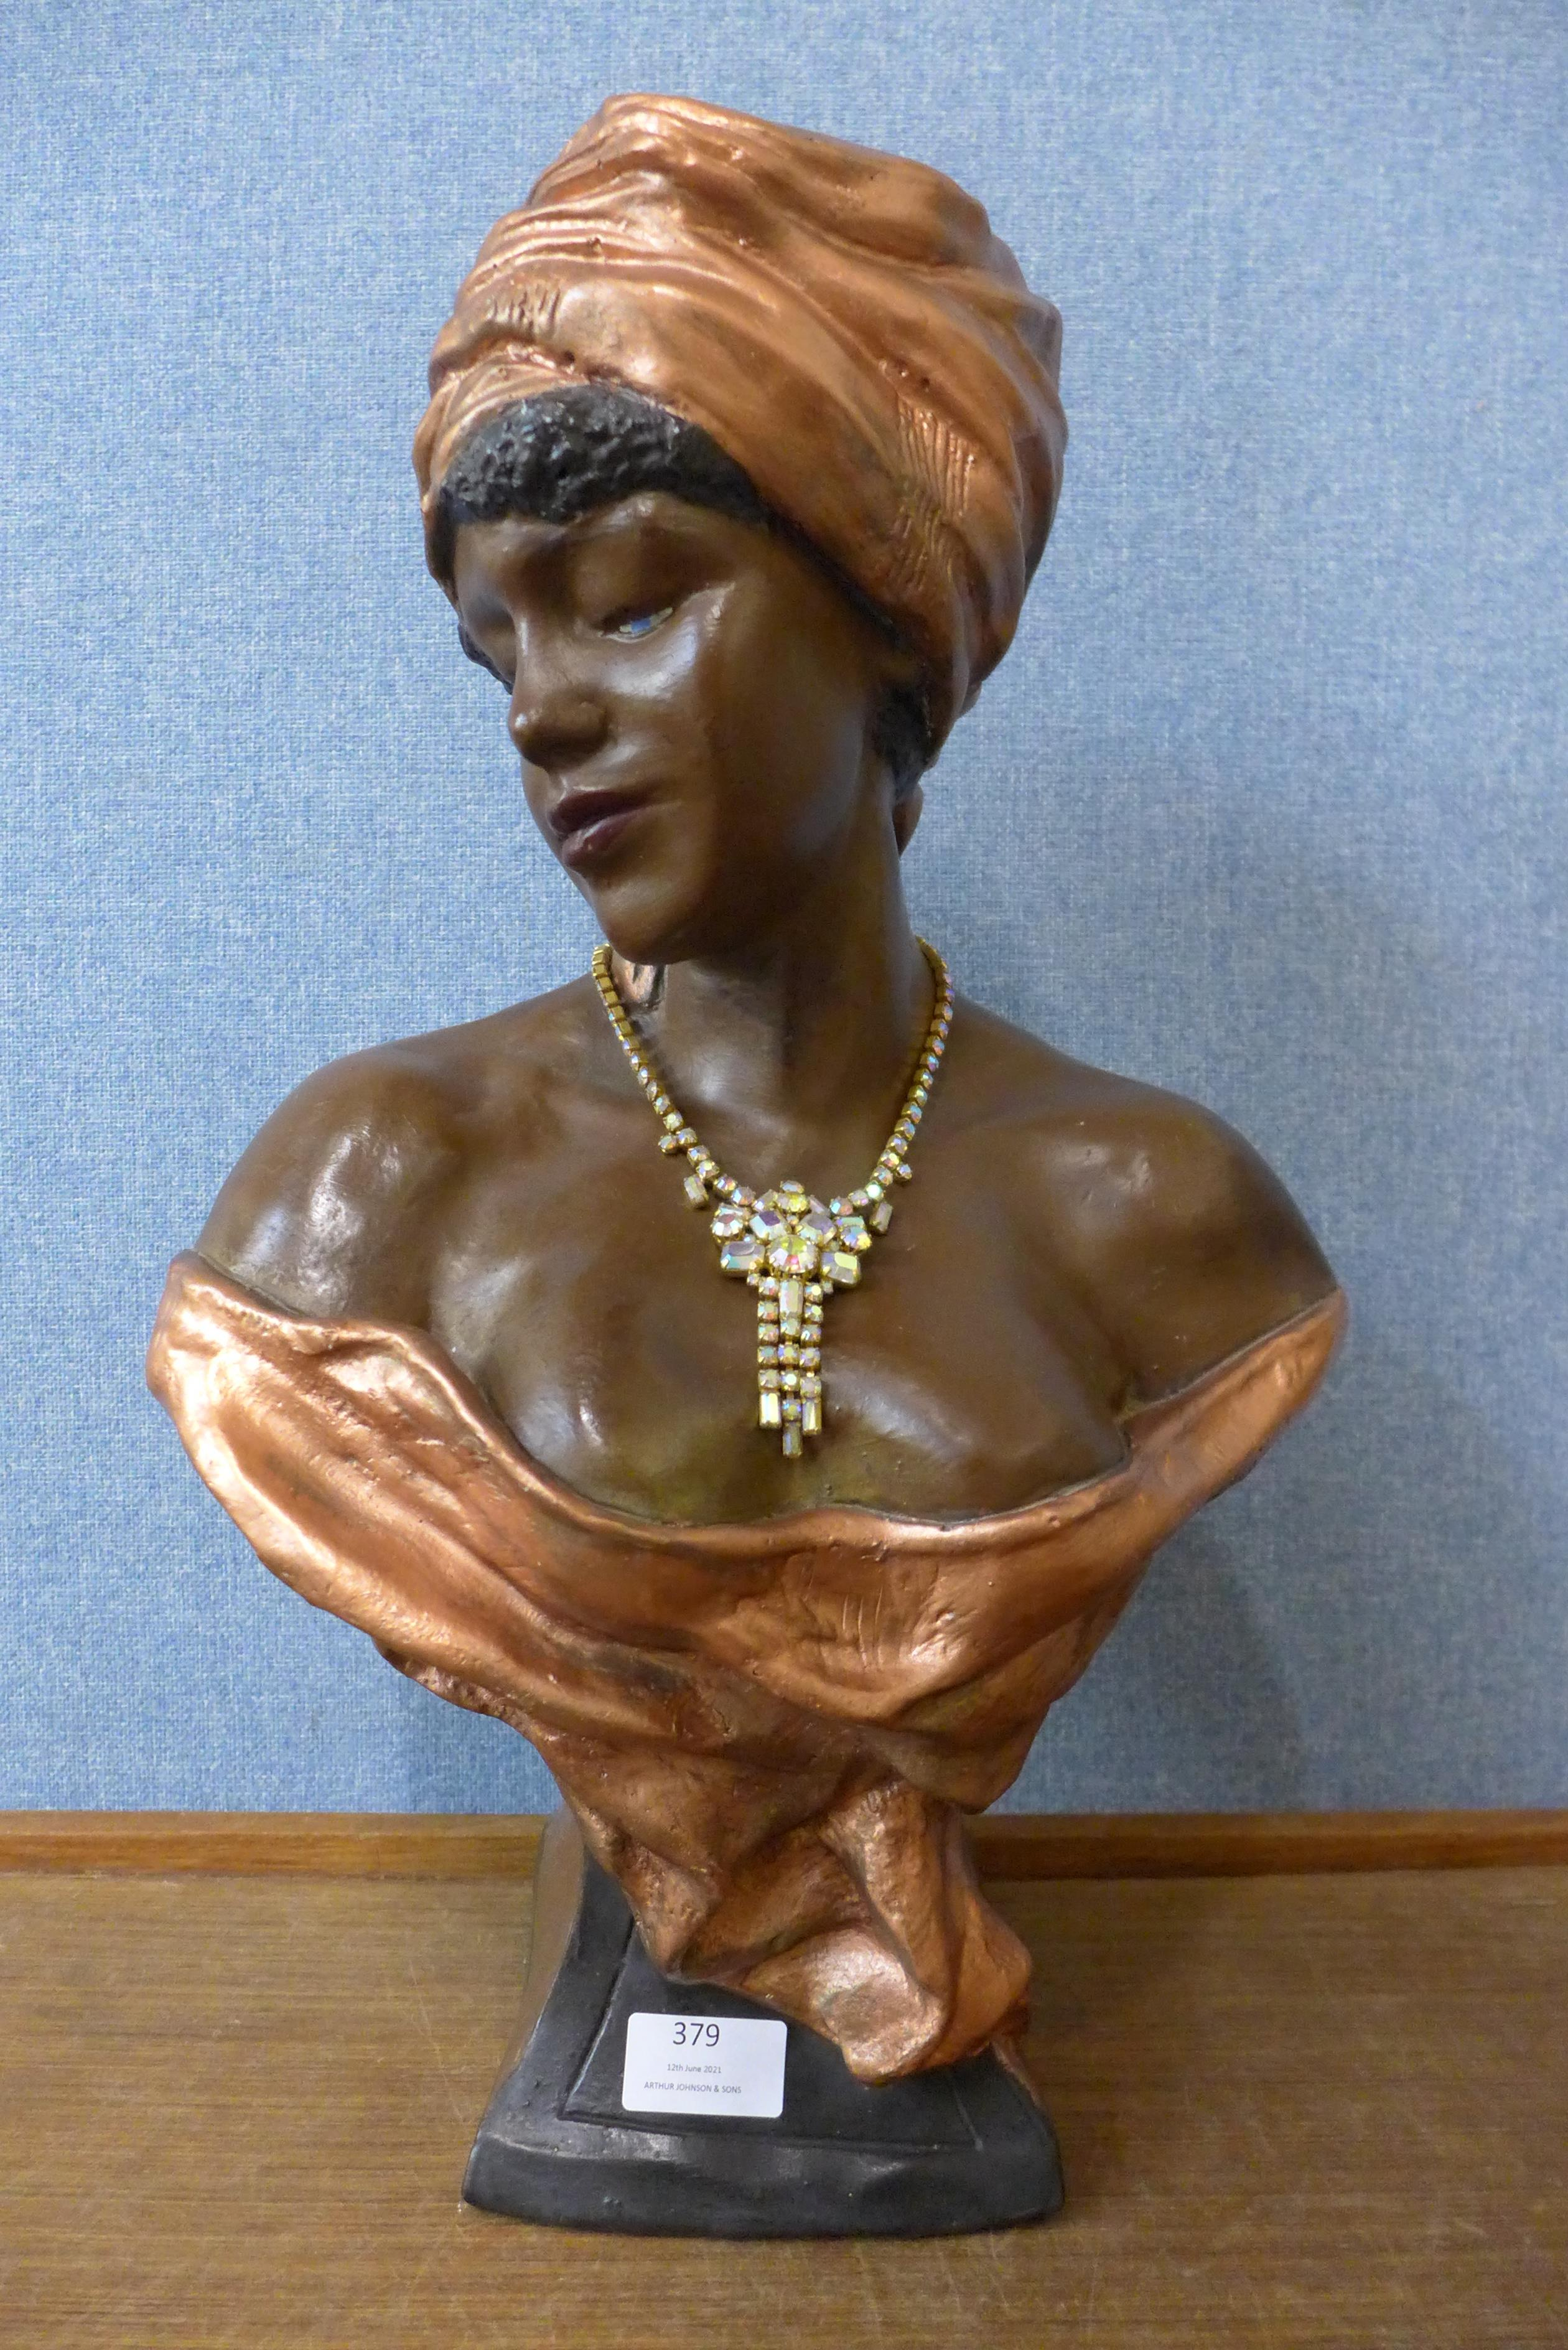 A plaster bust of a Caribbean lady